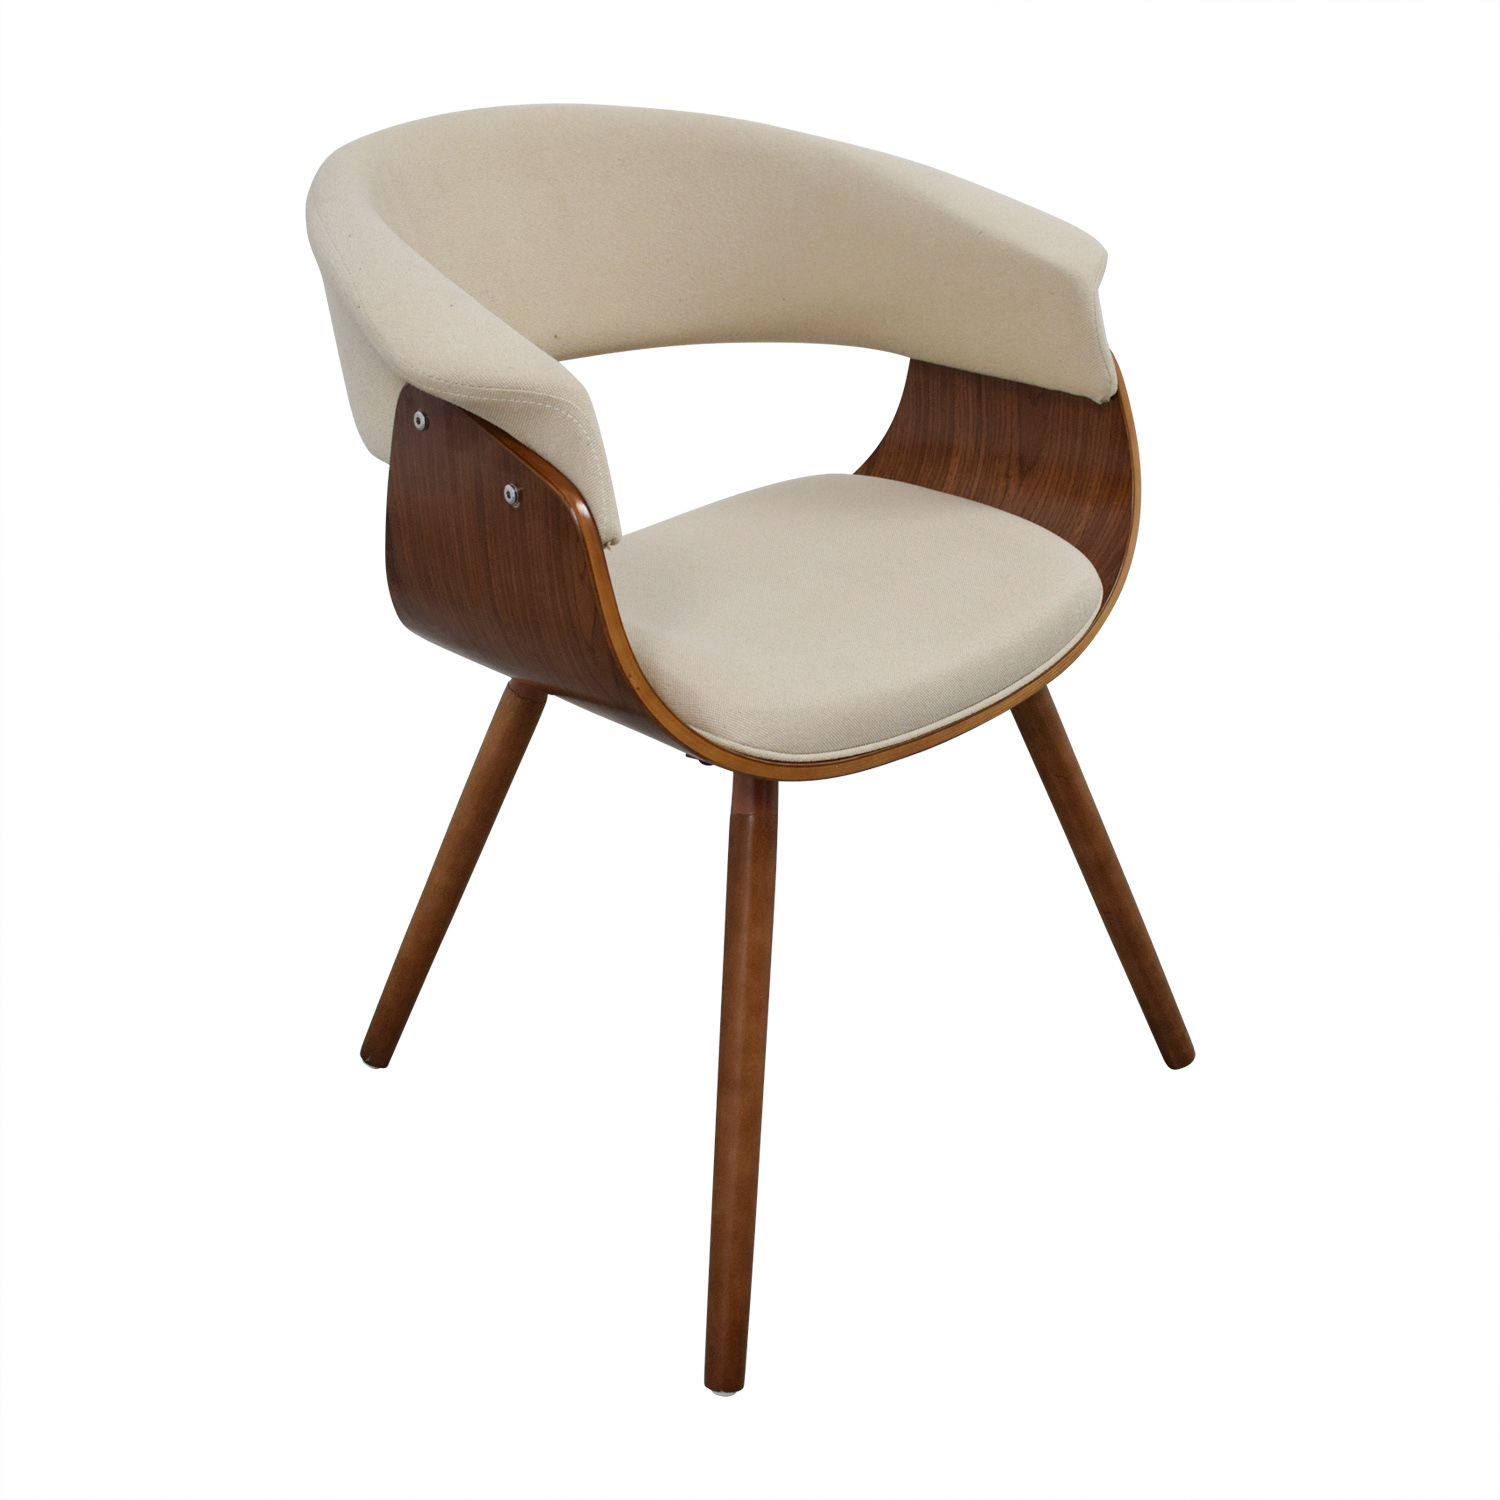 Joss & Main Joss & Main Frederick Off White and Wood Accent Arm Chair on sale